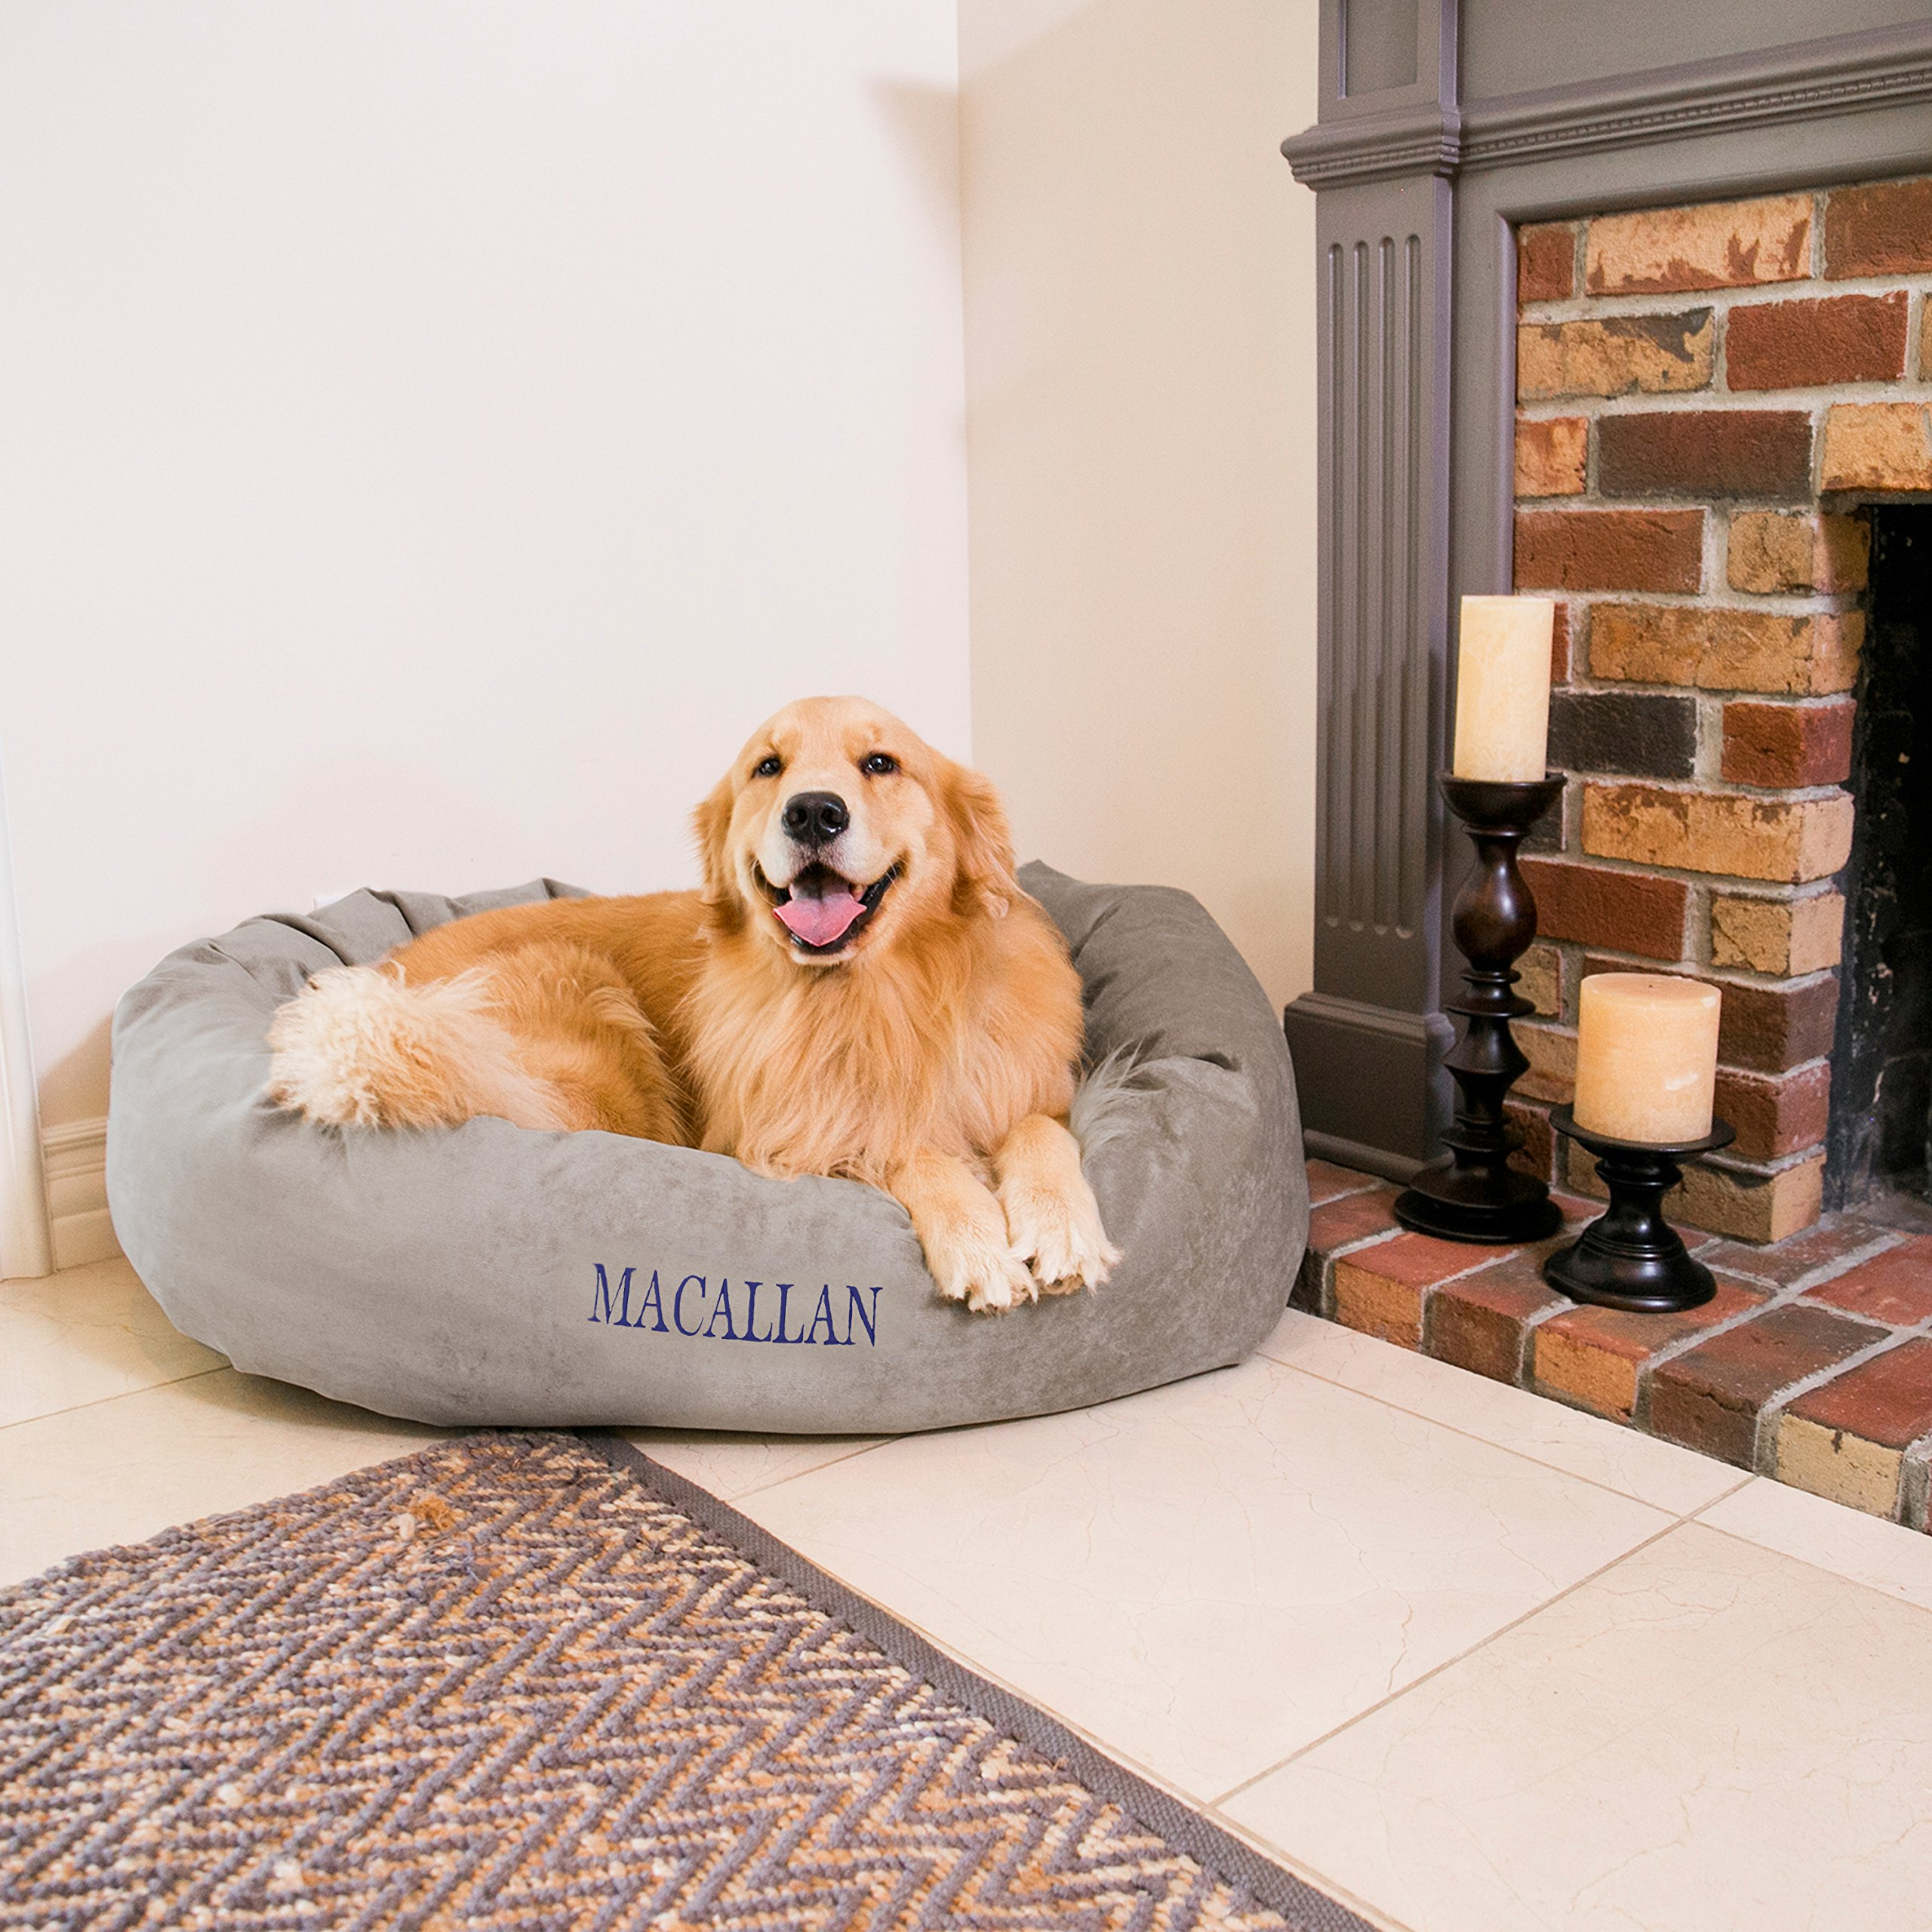 Majestic Pet Personalized Bagel Dog Bed - Machine Washable - Soft Comfortable Sleeping Mat - Durable Supportive Cushion Custom Embroidered - available replacement covers - Medium Silver Grey